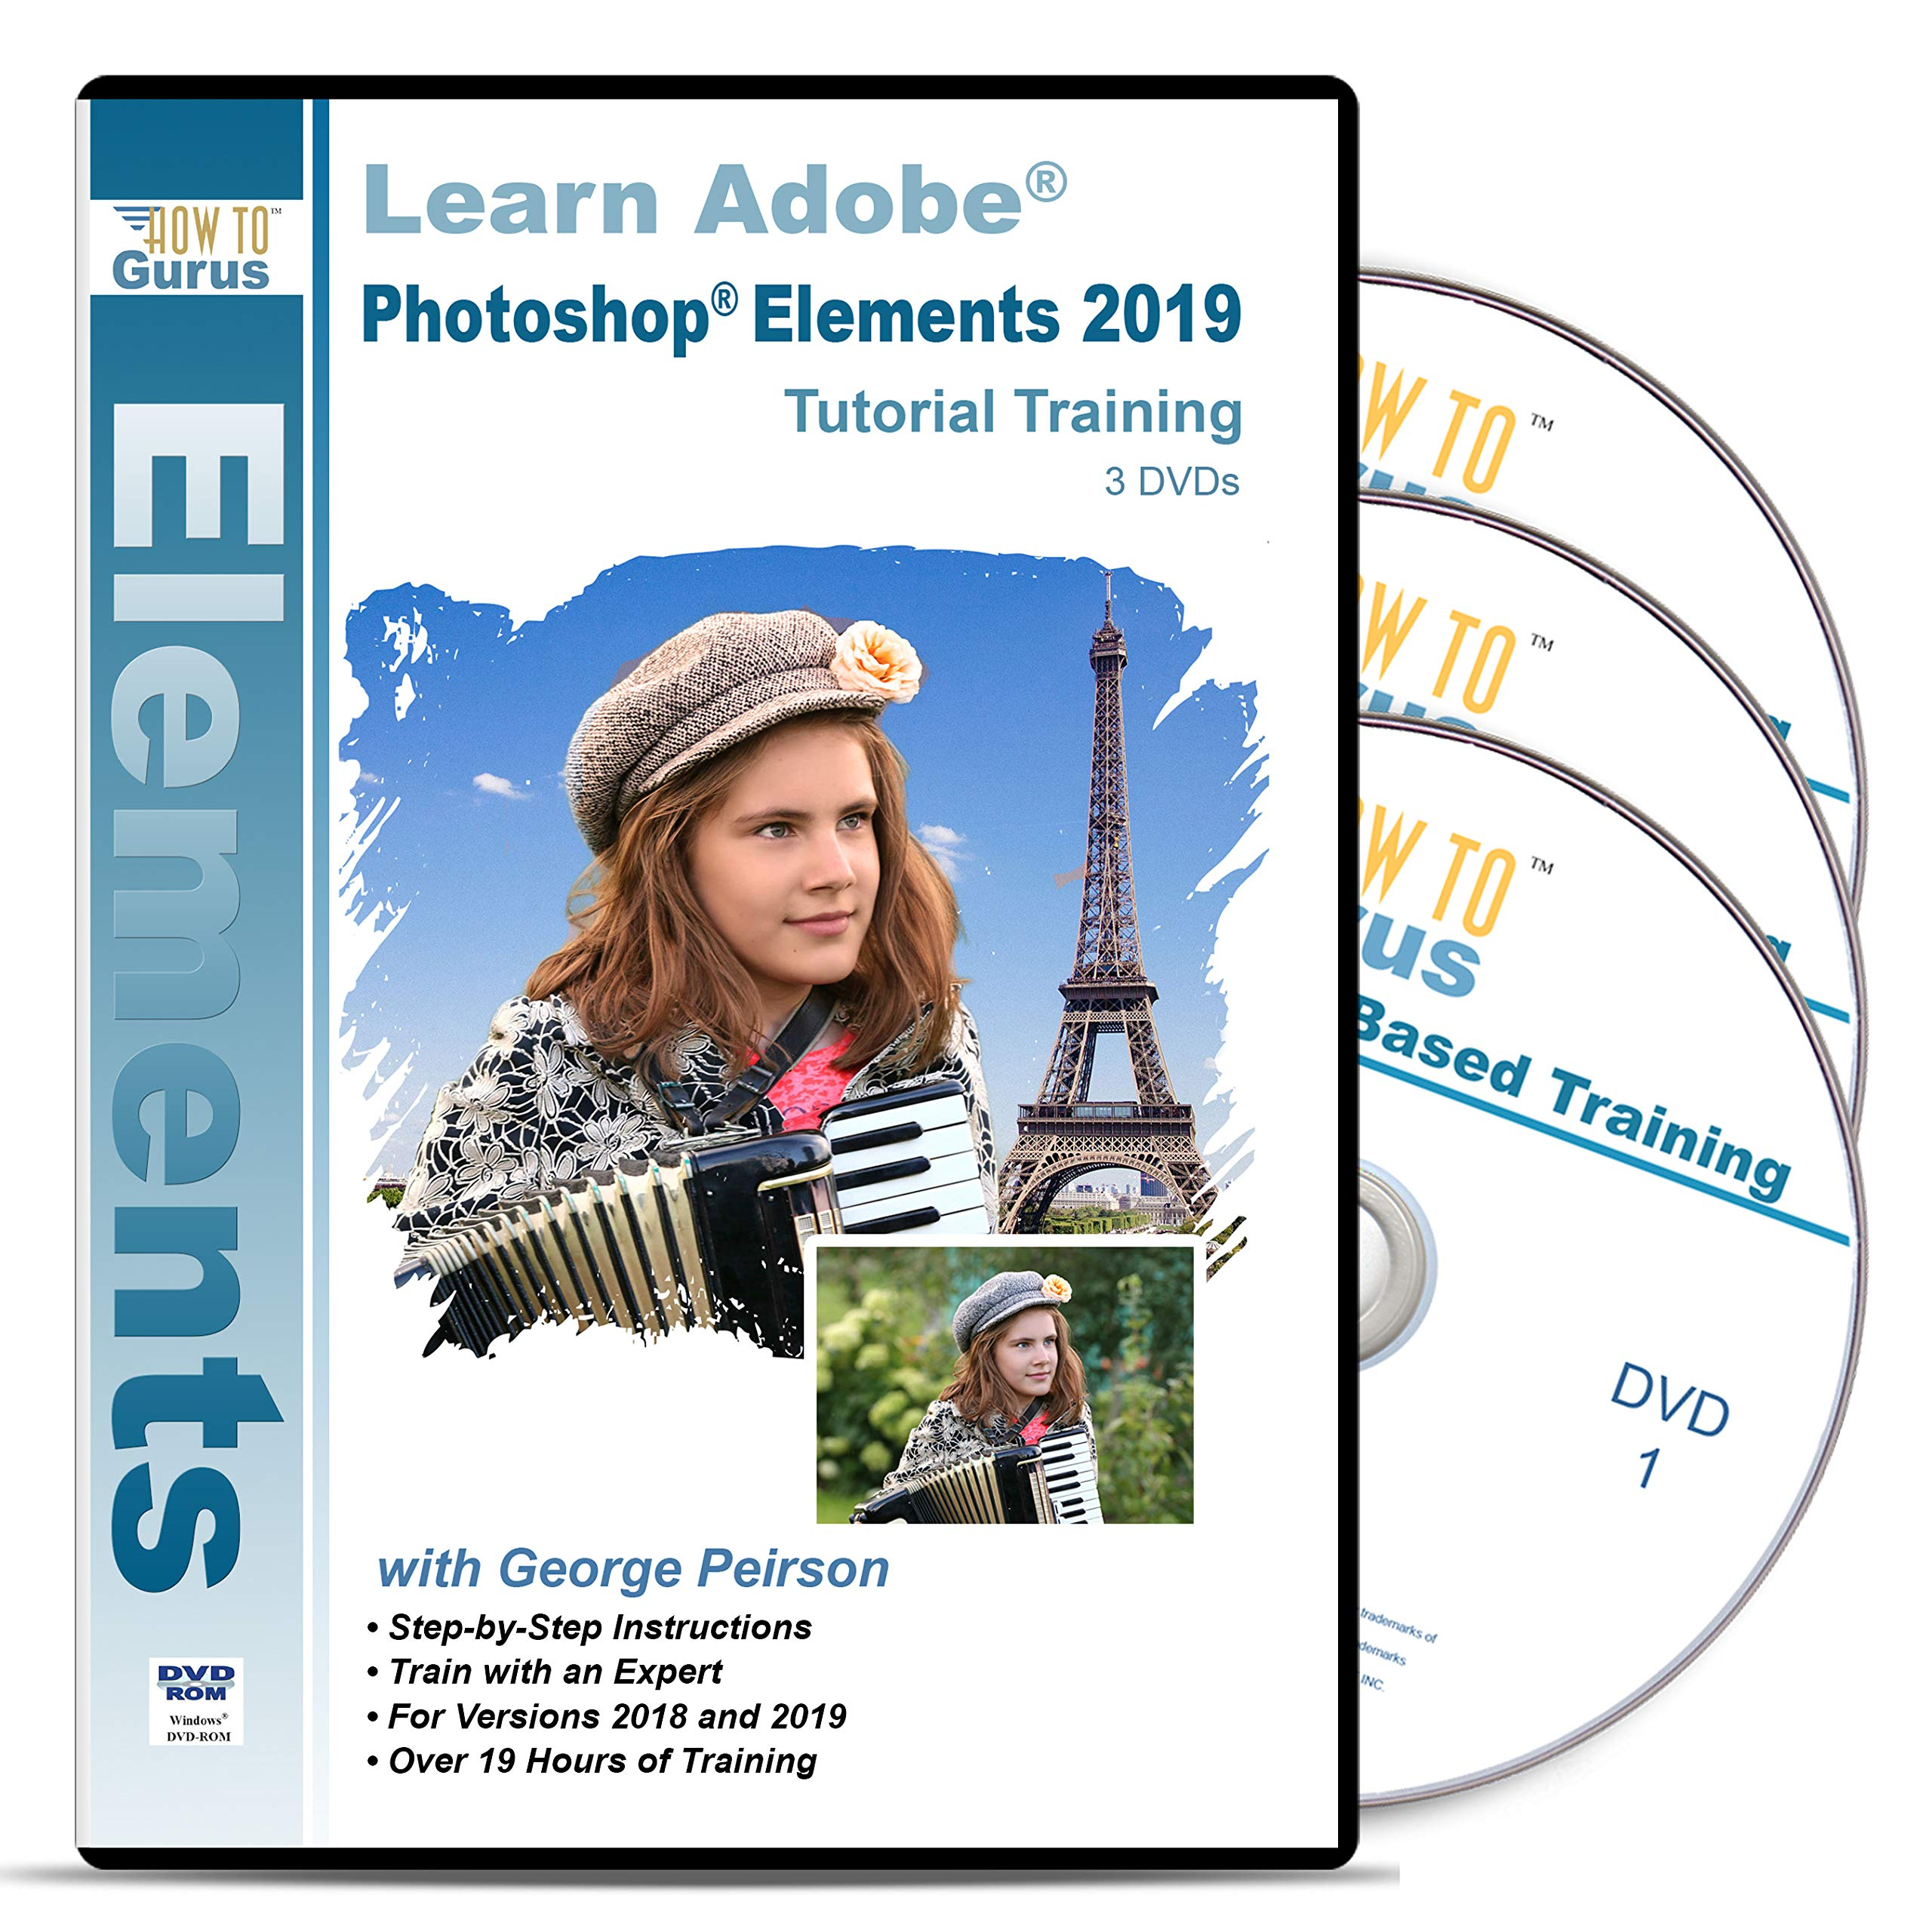 Adobe Photoshop Elements 2019 Tutorial Training on 3 DVDs by How To Gurus